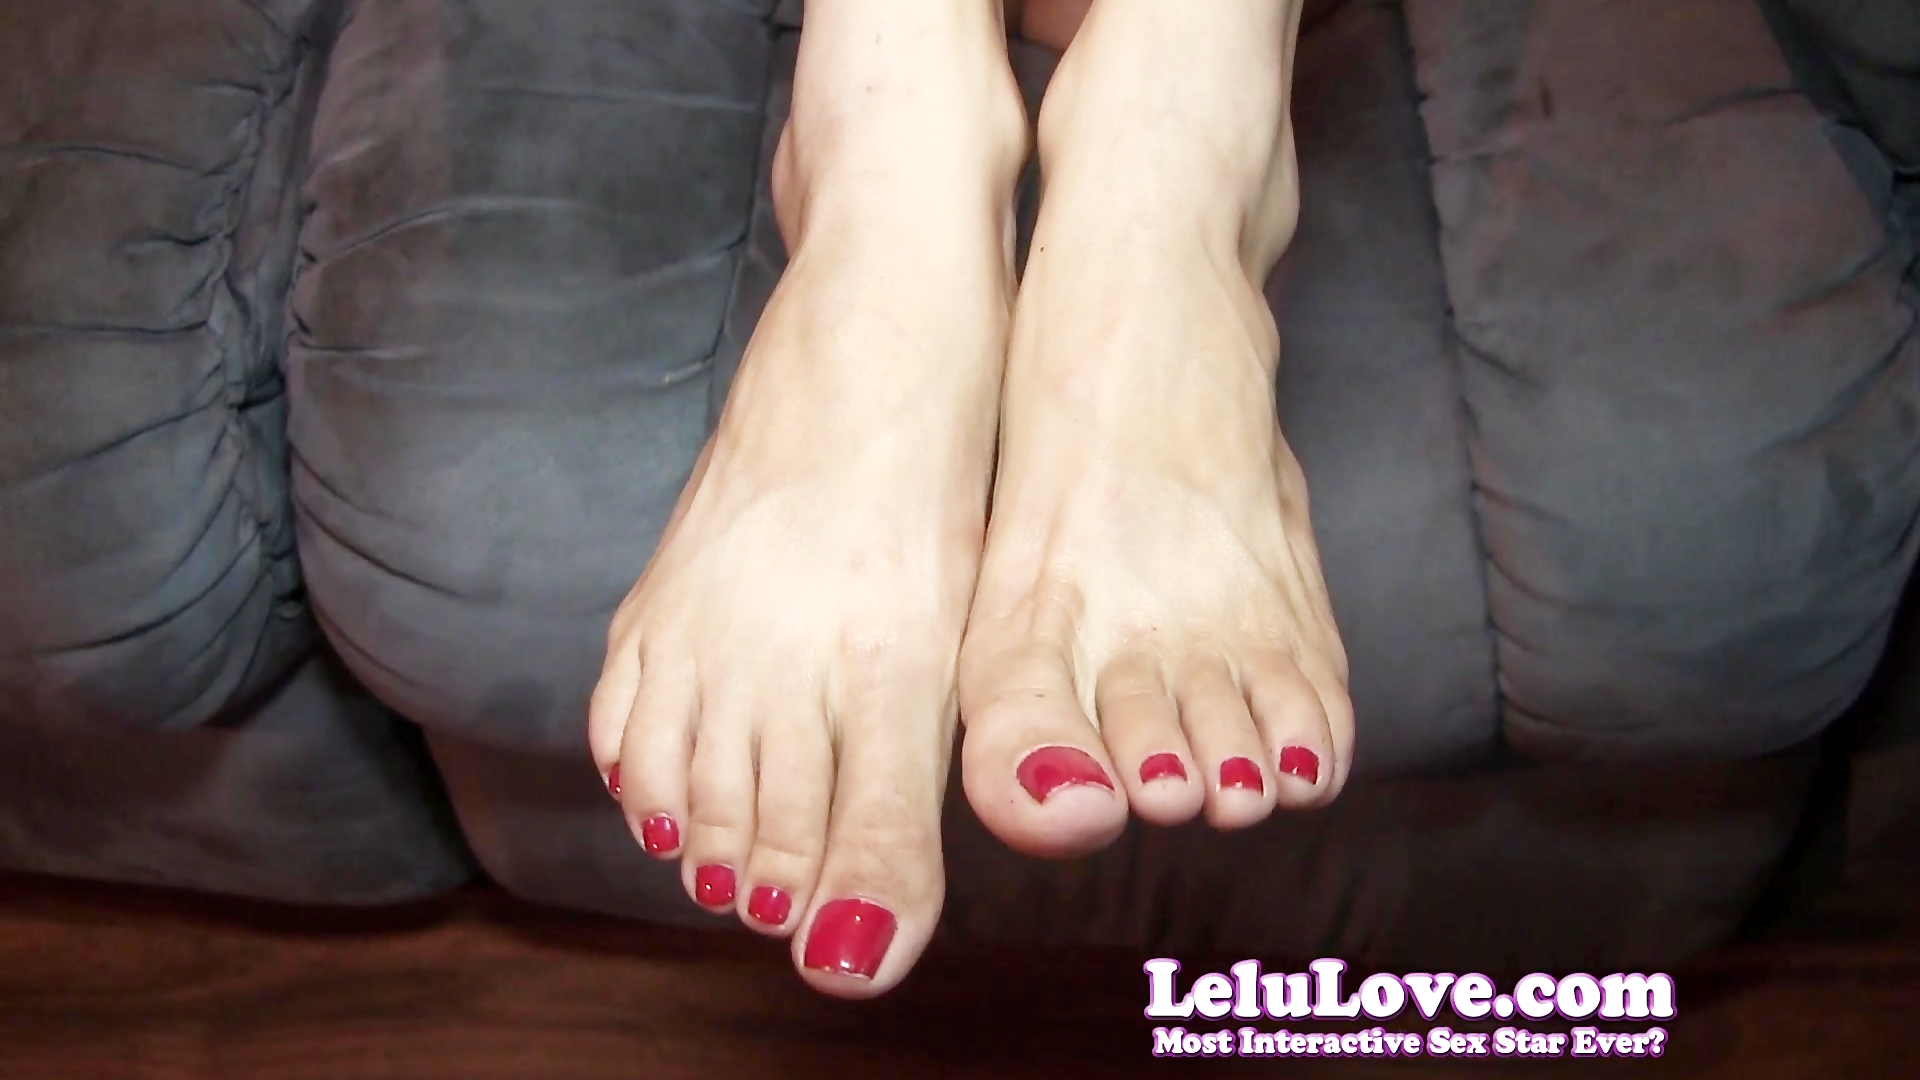 Lelu lovespreading pussy asshole soles joe